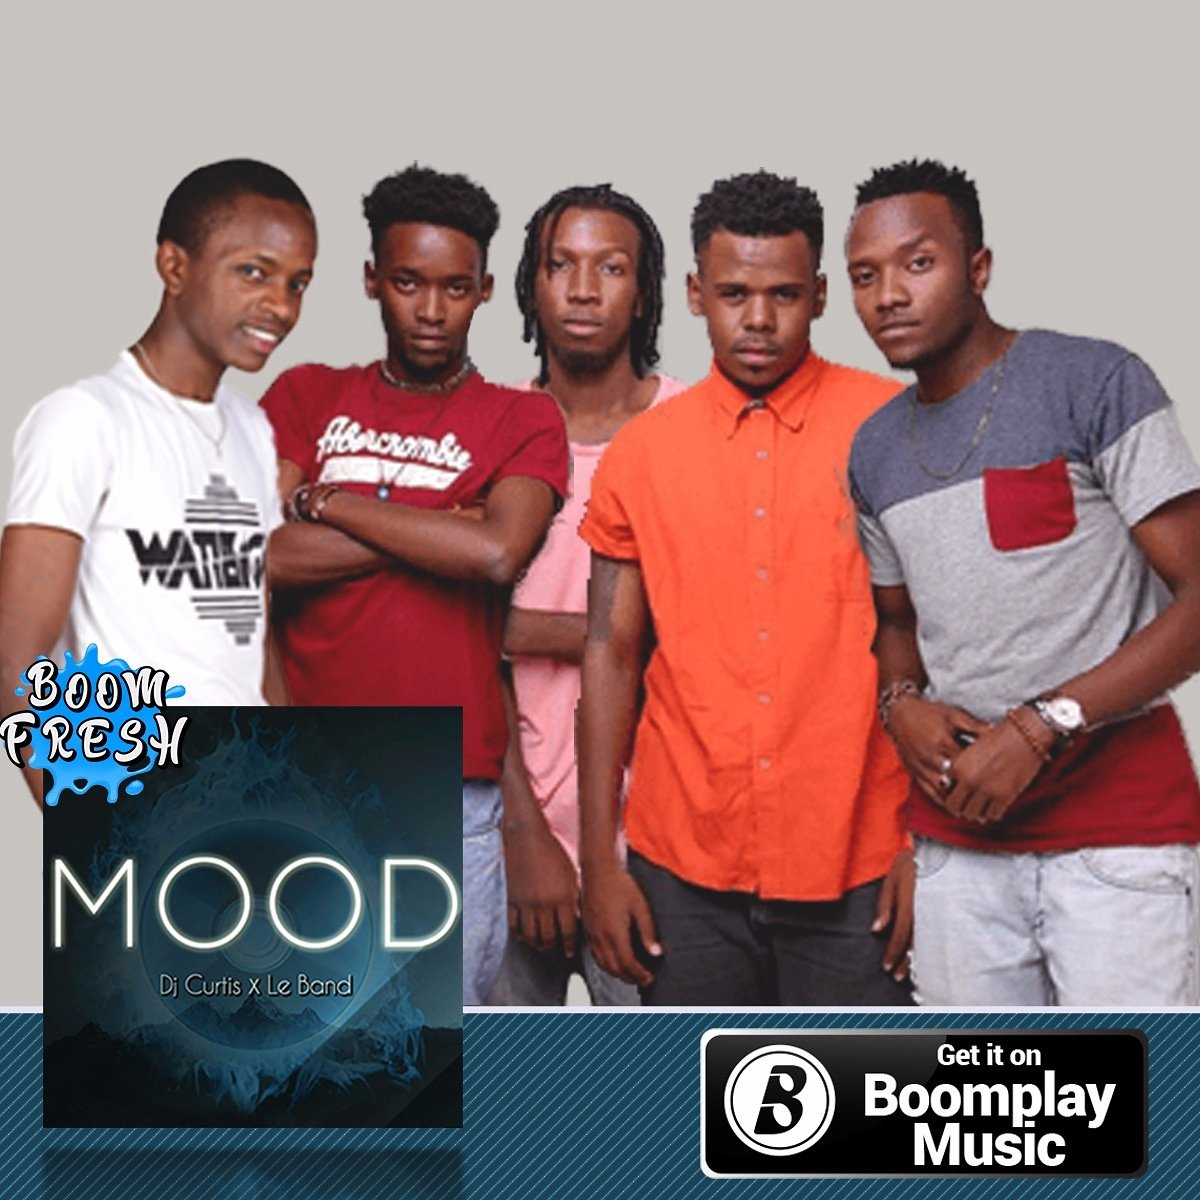 Spankin&#39; NEW  Get #Mood by #Djcurtis &amp; @leband254 Right Here on Boomplay Music  Link   https:// goo.gl/F3N4nM  &nbsp;   #NewMusicAlert #PartyMusic #Musicapp #EverythingMusic #BoomplayMusic <br>http://pic.twitter.com/OCcxzRhjoC